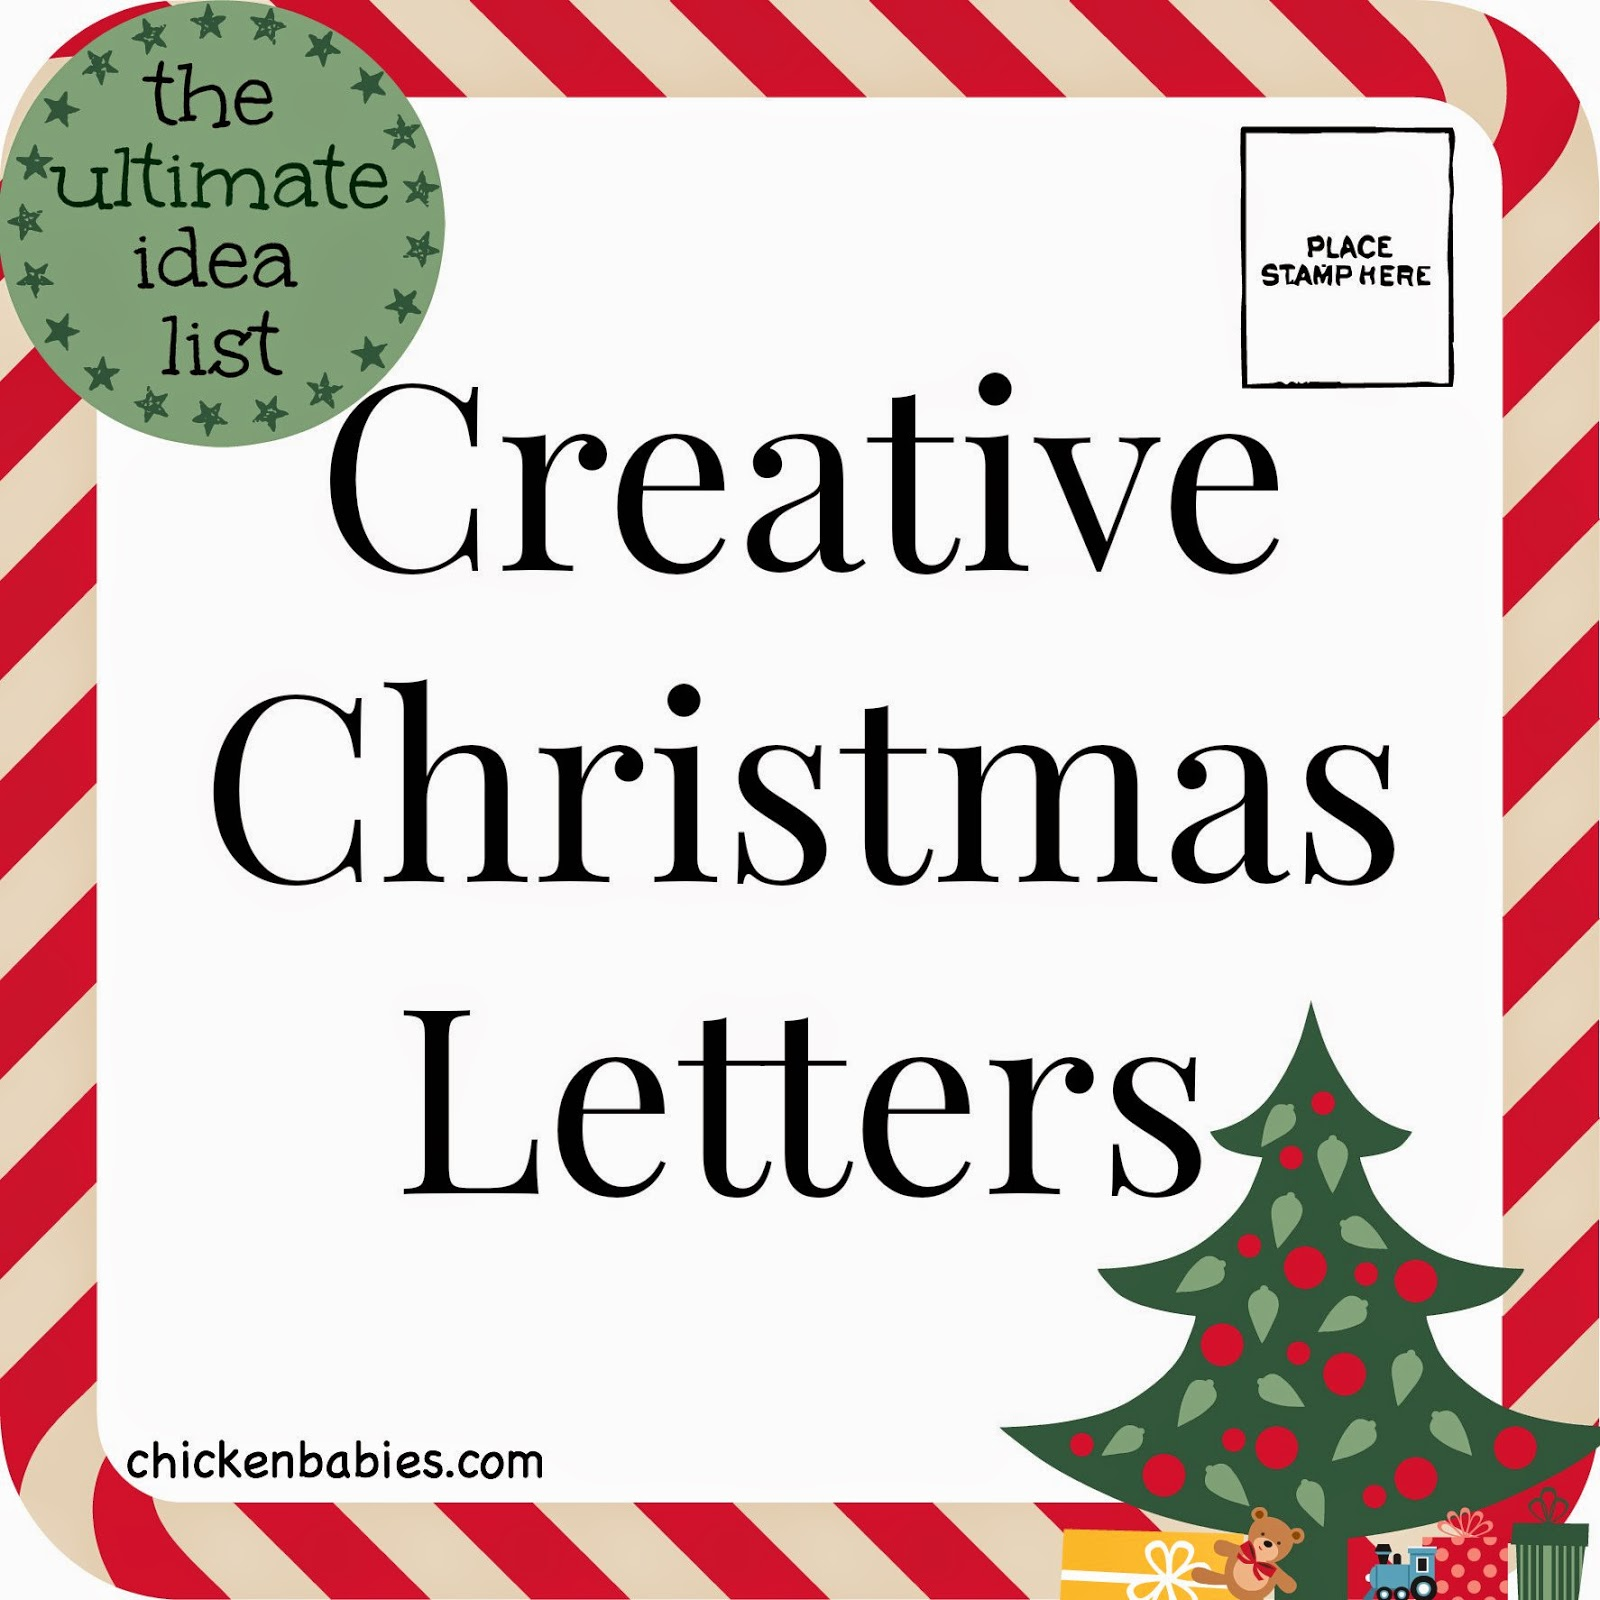 chicken babies: Creative Christmas Letters